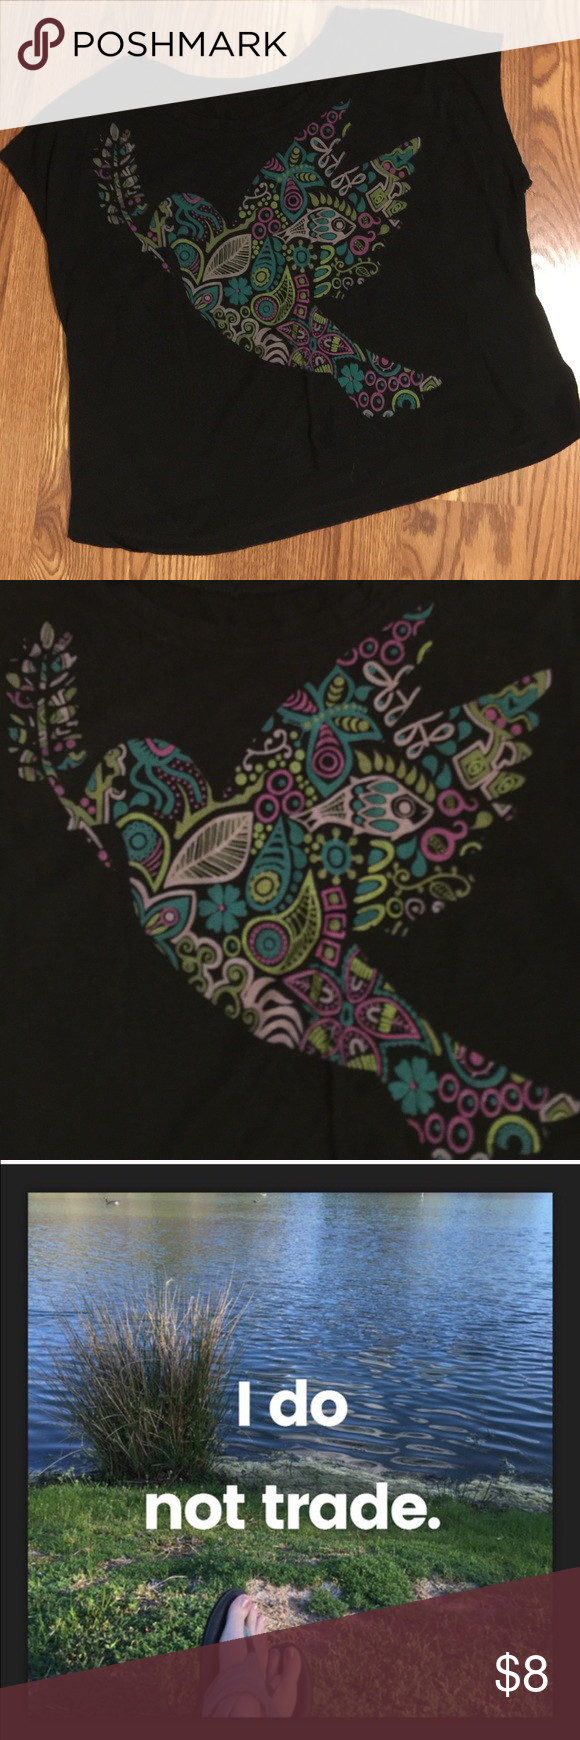 Black peace dove crop gypsy tee Very slight wash wear. Tag removed but fits like XL. Don't like my price? Make me an offer via the offer button!✌️ I strive to please & maintain 5 stars. For this reason, unless I'm out of town, I ship same or next day. You can buy with confidence knowing you will receive your item as described & quickly!  NO TRADES Tops